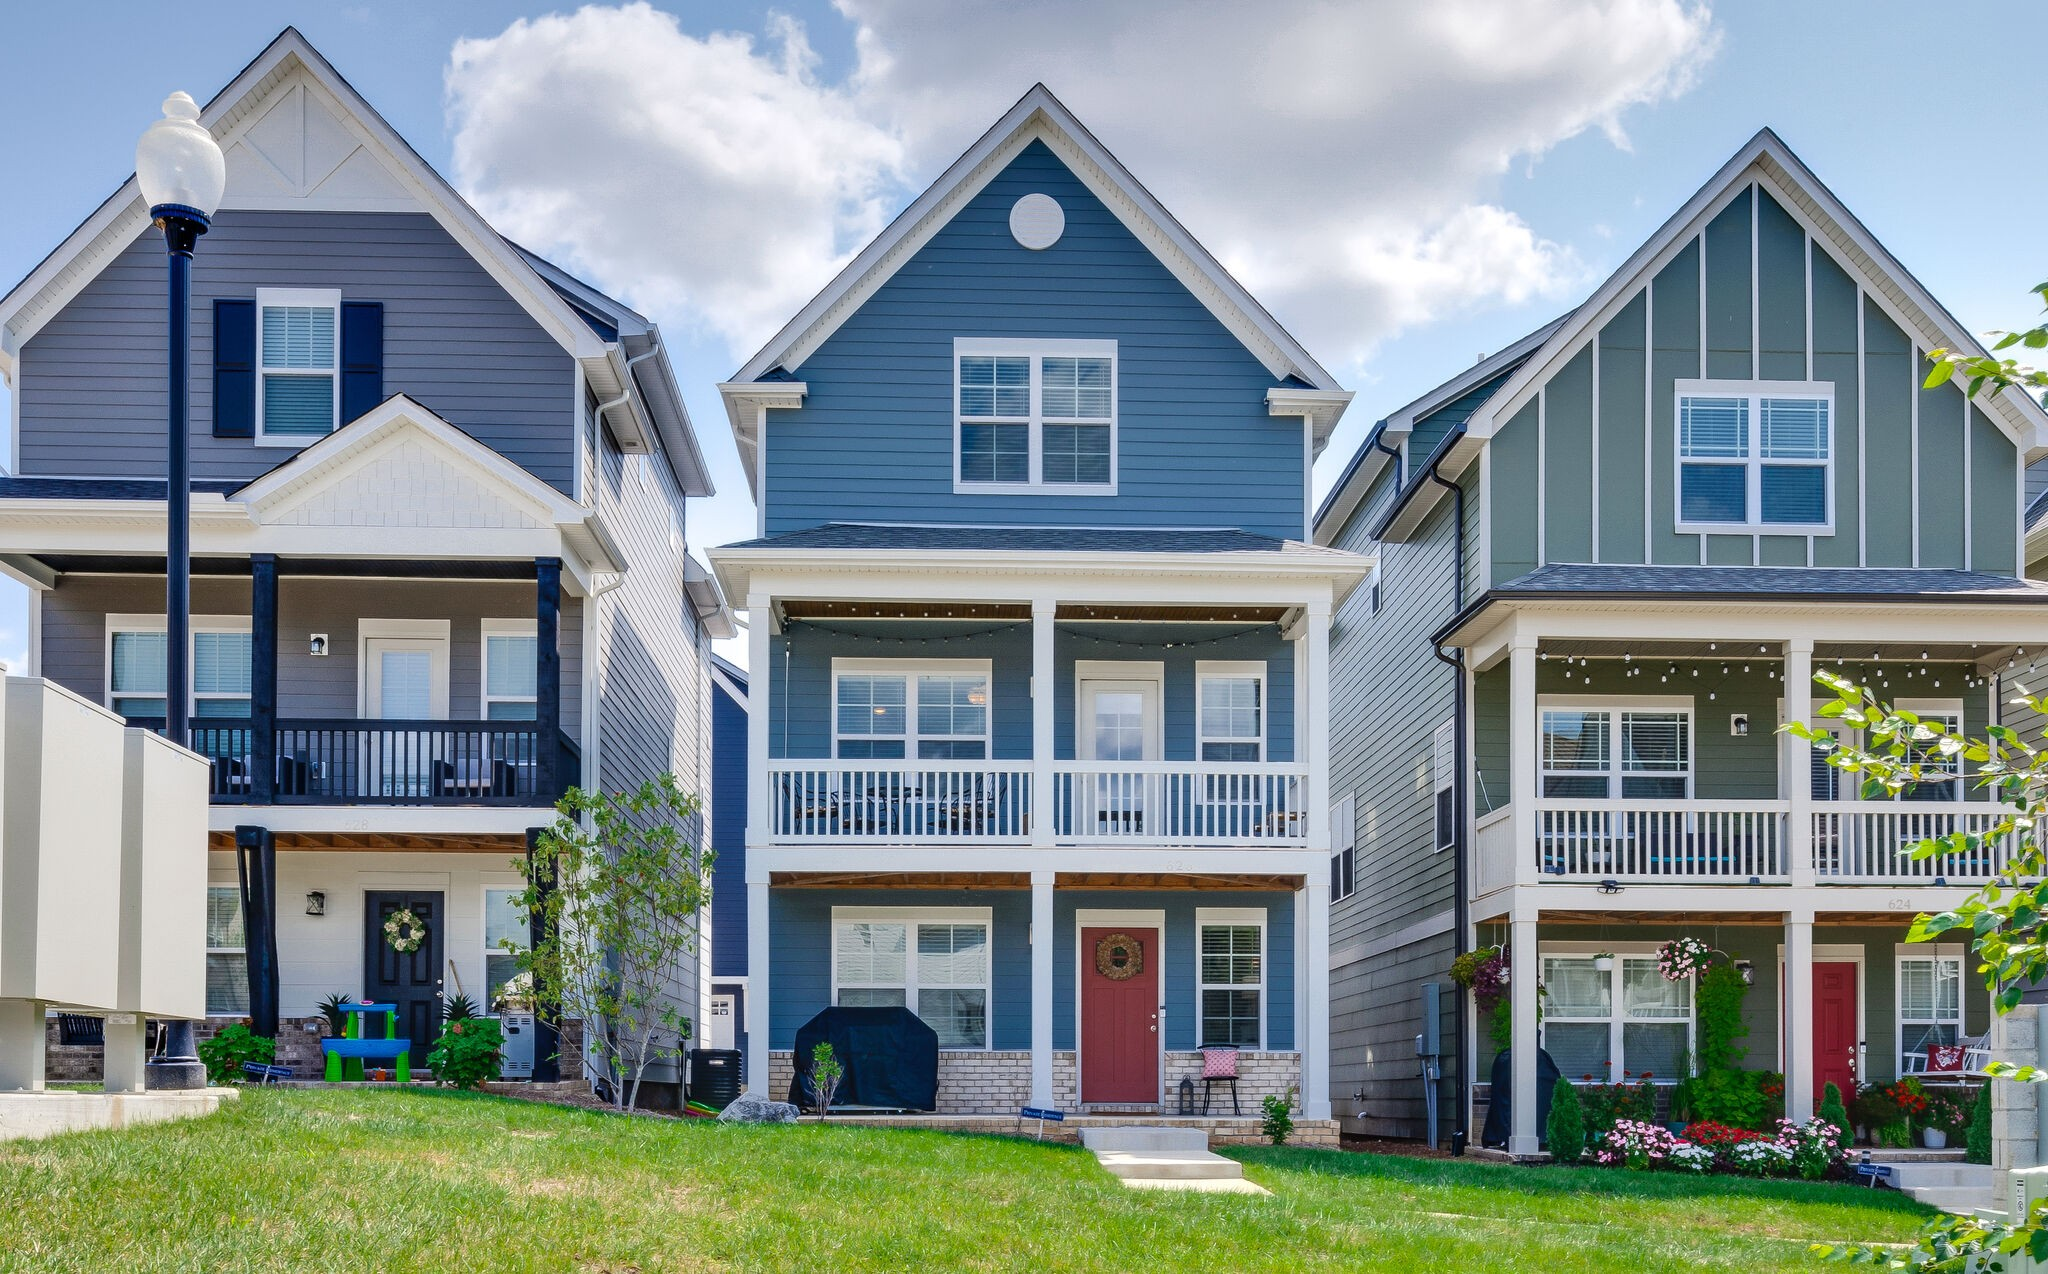 The Ingram. Three story with upstairs primary. First floor features entry foyer, bonus room, half bath. Second floors has an open family room, kitchen, dining, and 1/2 bath. Third floor contains the owners suite, 2 additional bedrooms, and 2 full baths.